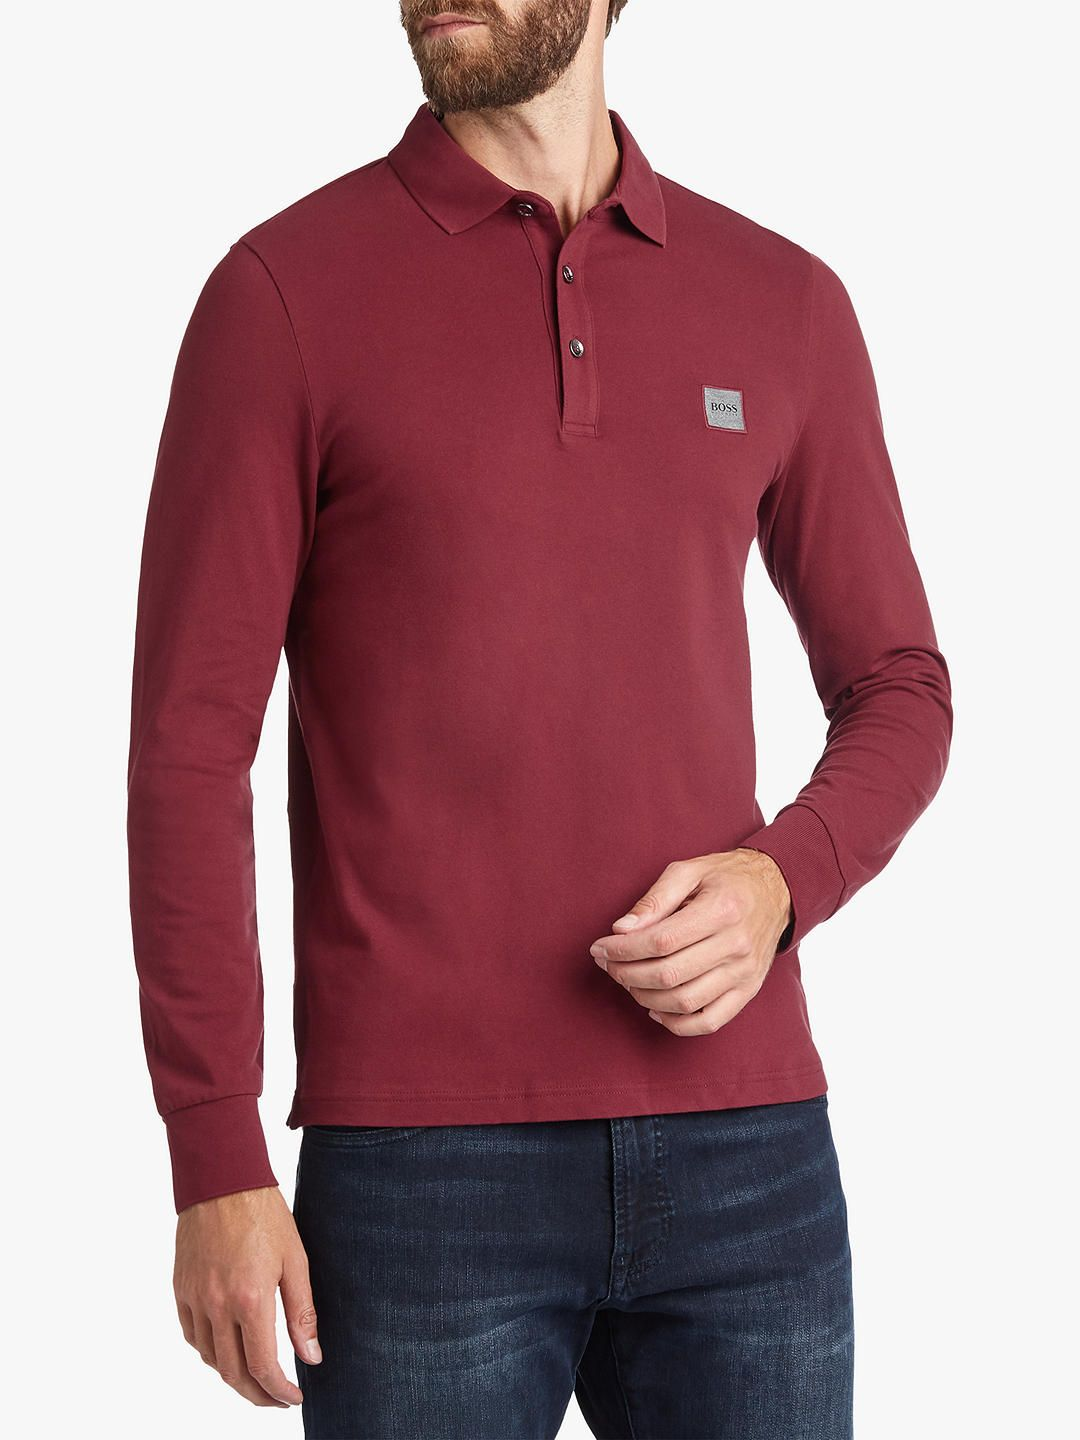 Buyboss Passerby Long Sleeve Polo Shirt Open Red S Online At